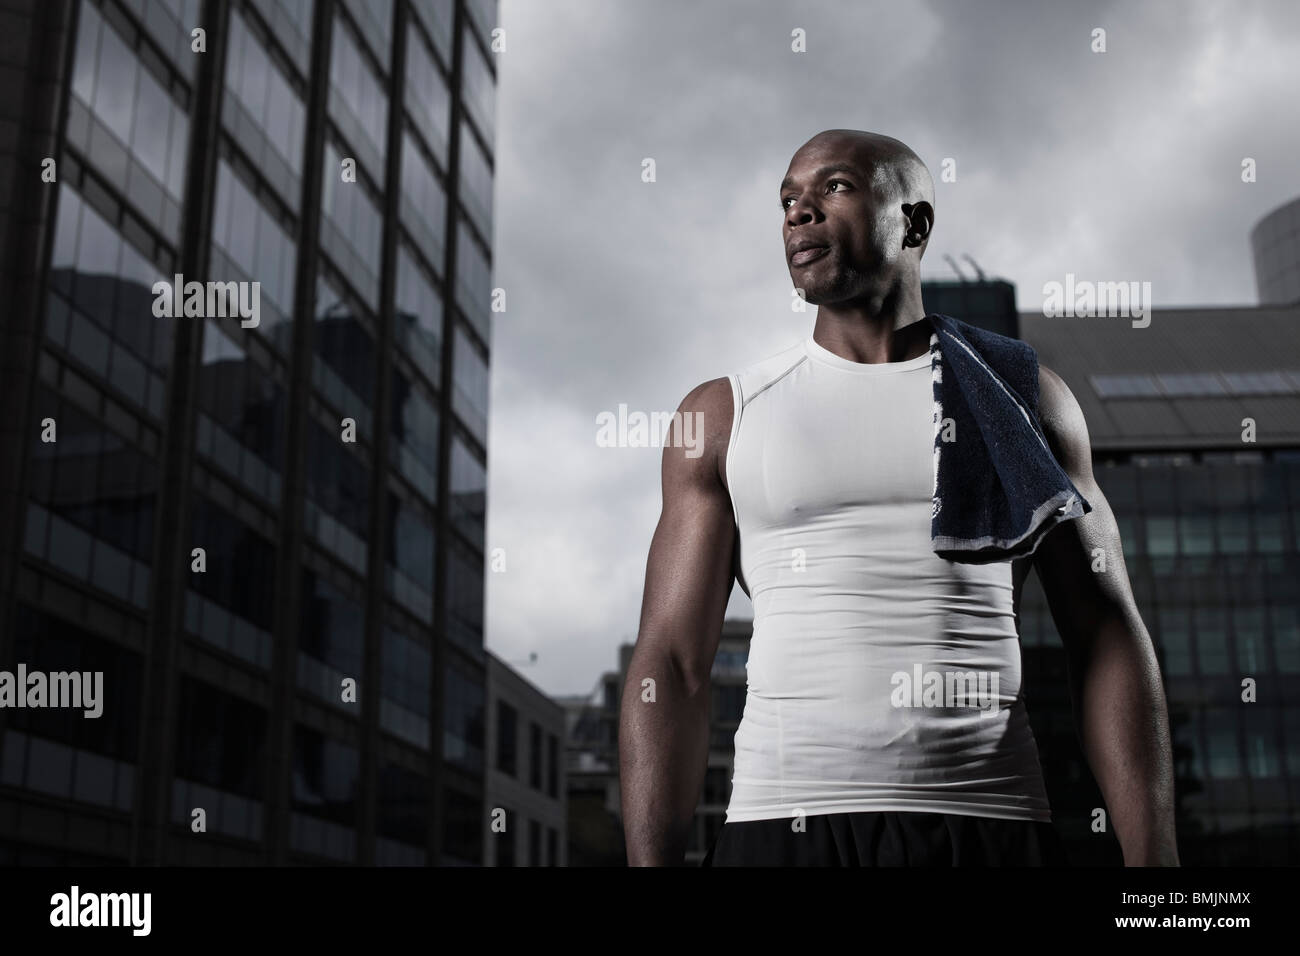 Fit man wearing sportswear backgrounded by modern city buildings - Stock Image